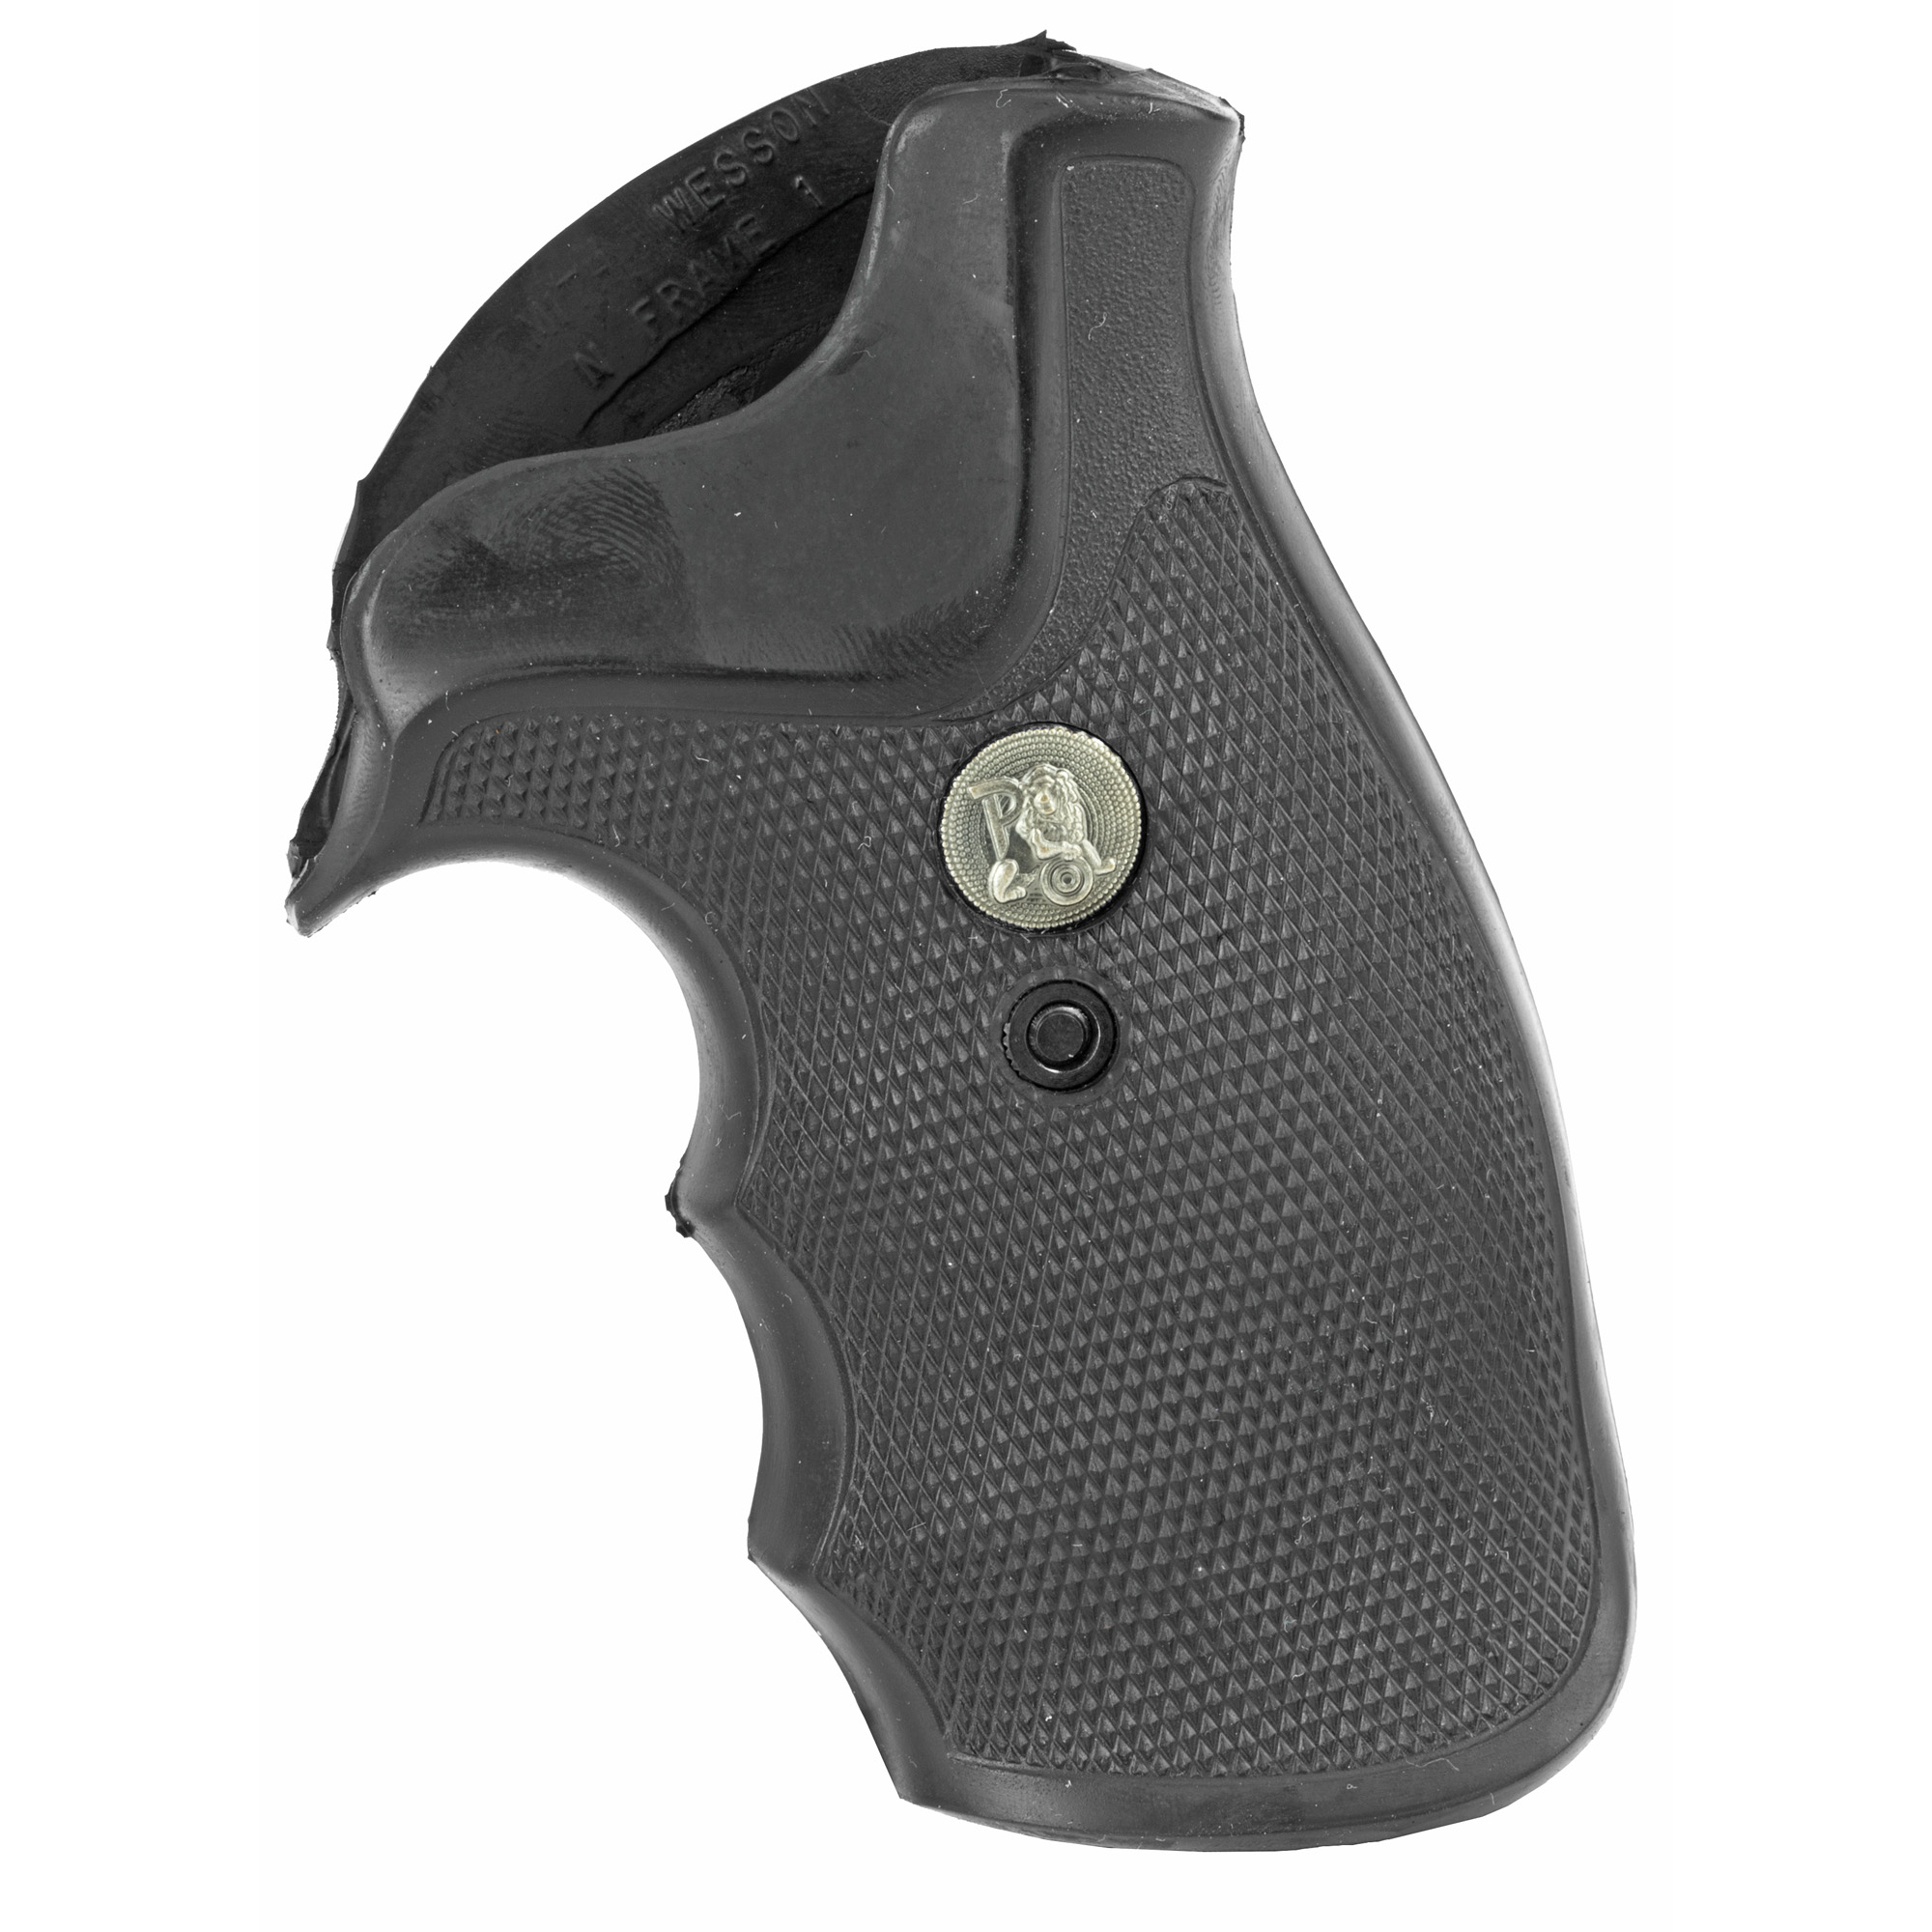 """All guns recoil"""" and recoil affects your accuracy"""" control"""" and overall shooting enjoyment. For those shooters who want the most out of their shooting experience"""" Pachmayr offers the Decelerator Grips. After years of research"""" Pachmayr has developed this breakthrough rubber material - 50% softer than a regular grip. The New Finger Groove Decelerator Grip is designed to control the recoil produced by a powerful revolver. Combined with recoil absorbing air cushions along the backstrap"""" this revolver grip is ideal for shooters that require the ultimate control and shooting comfort."""